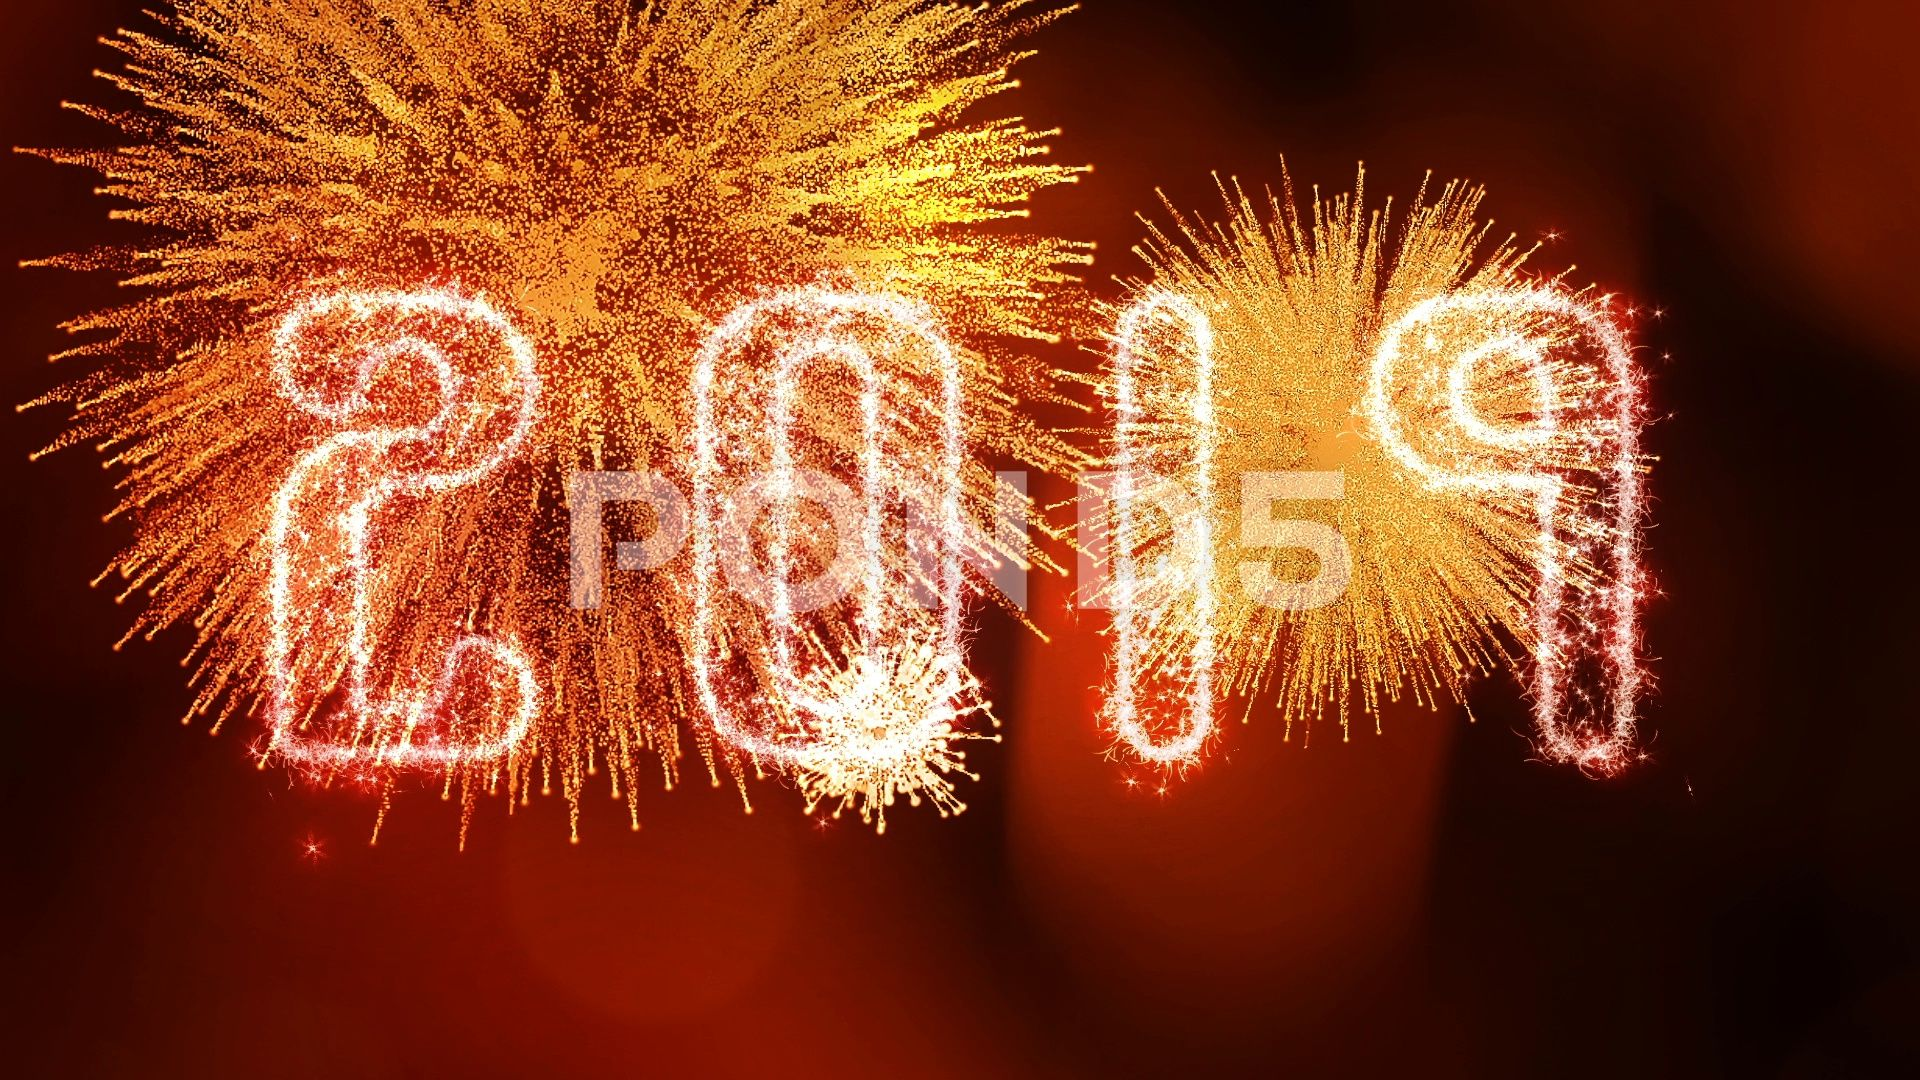 Sparkling Golden 2019 New Years Eve Celebration and